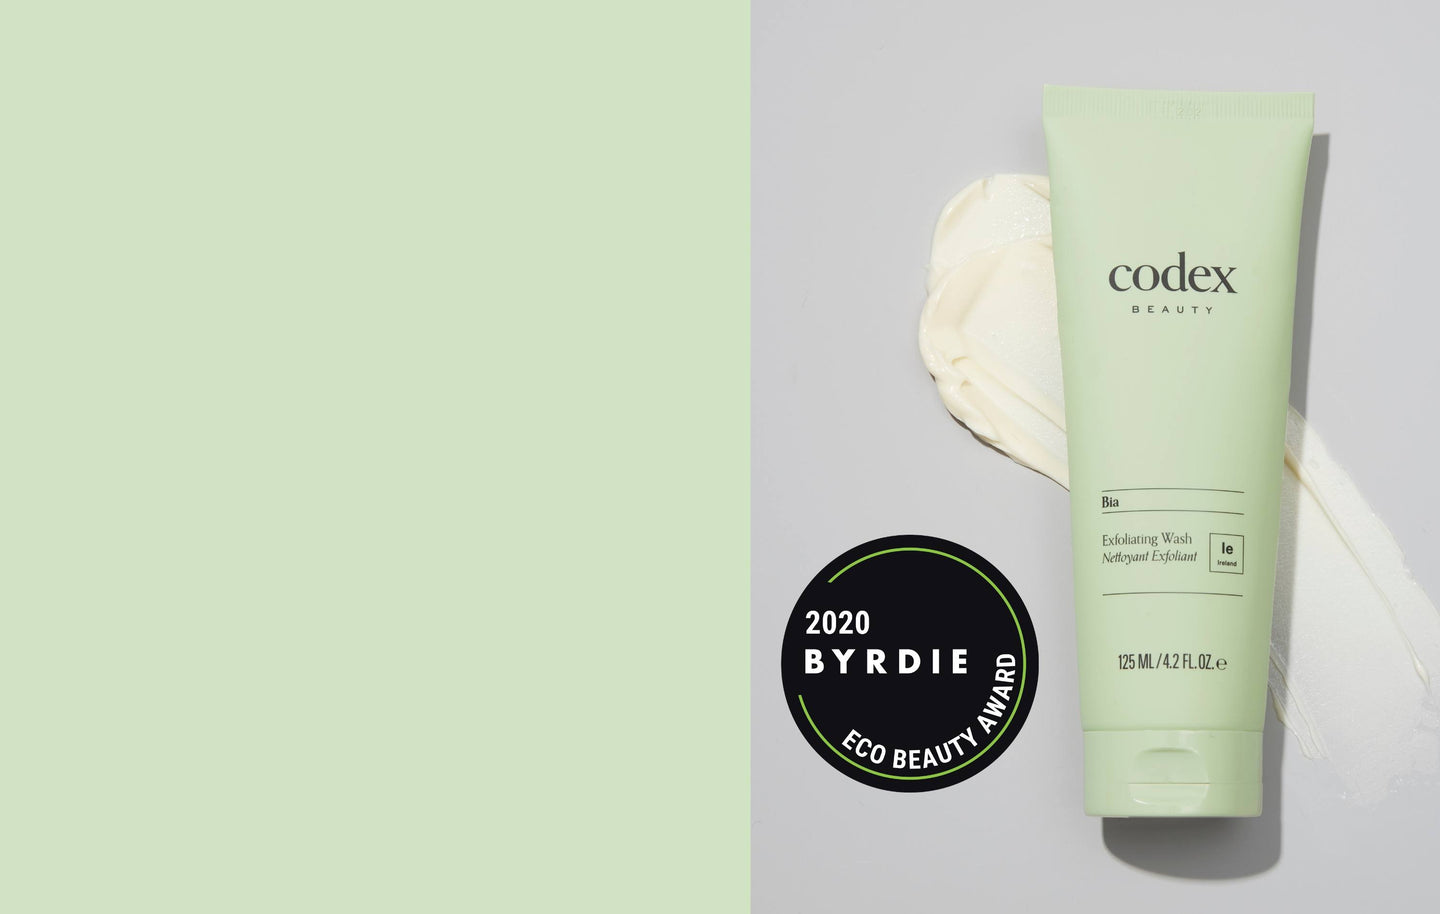 Bia Exfoliating Wash took home 'Best Exfoliator' in Byrdie Beauty's 2020 Eco Beauty Awards. This cleanser provides light exfoliation without irritating skin, and is gentle enough for everyday use.